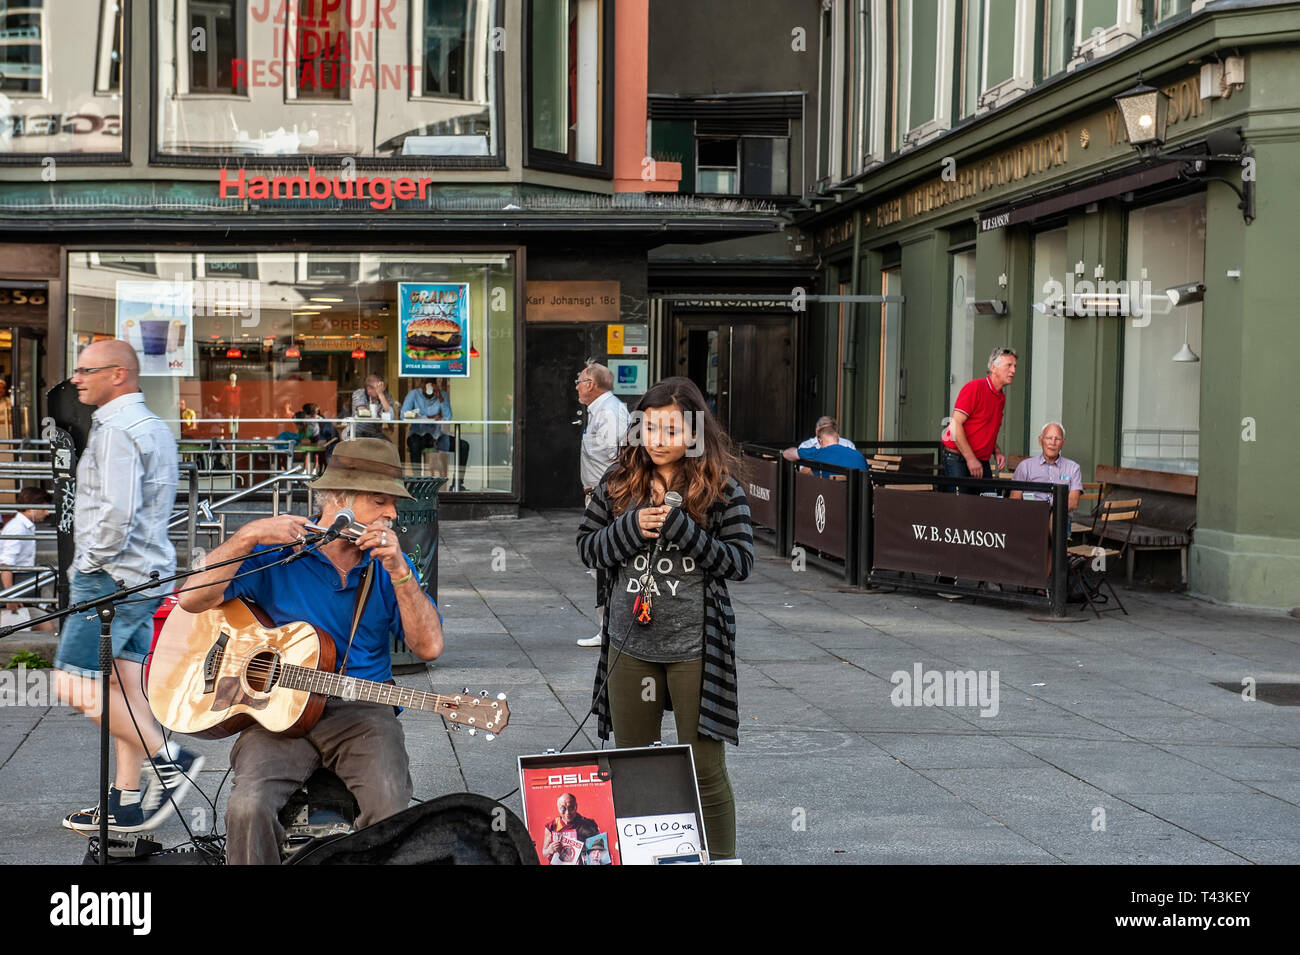 Norway, Oslo. August 1, 2013. Musician and girl singing in the square in Oslo, the capital of Norway. Extra income for . Editorial. - Stock Image